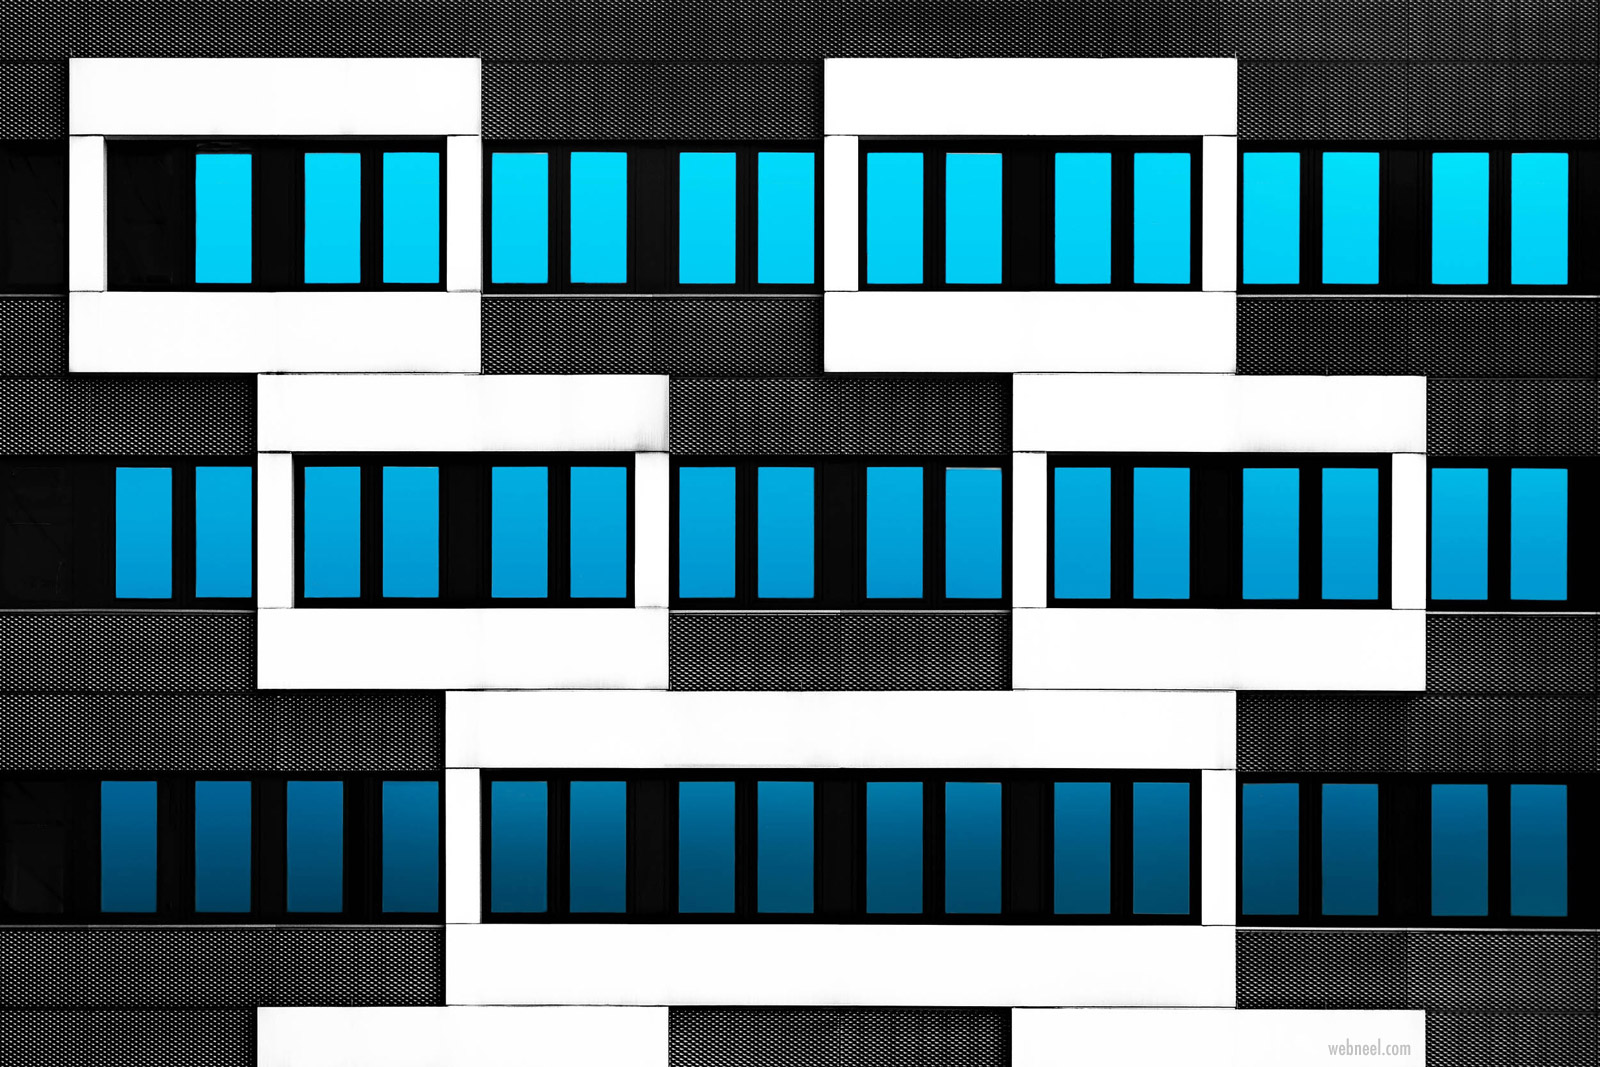 abstract photography building by hans wolfgang hawerkamp